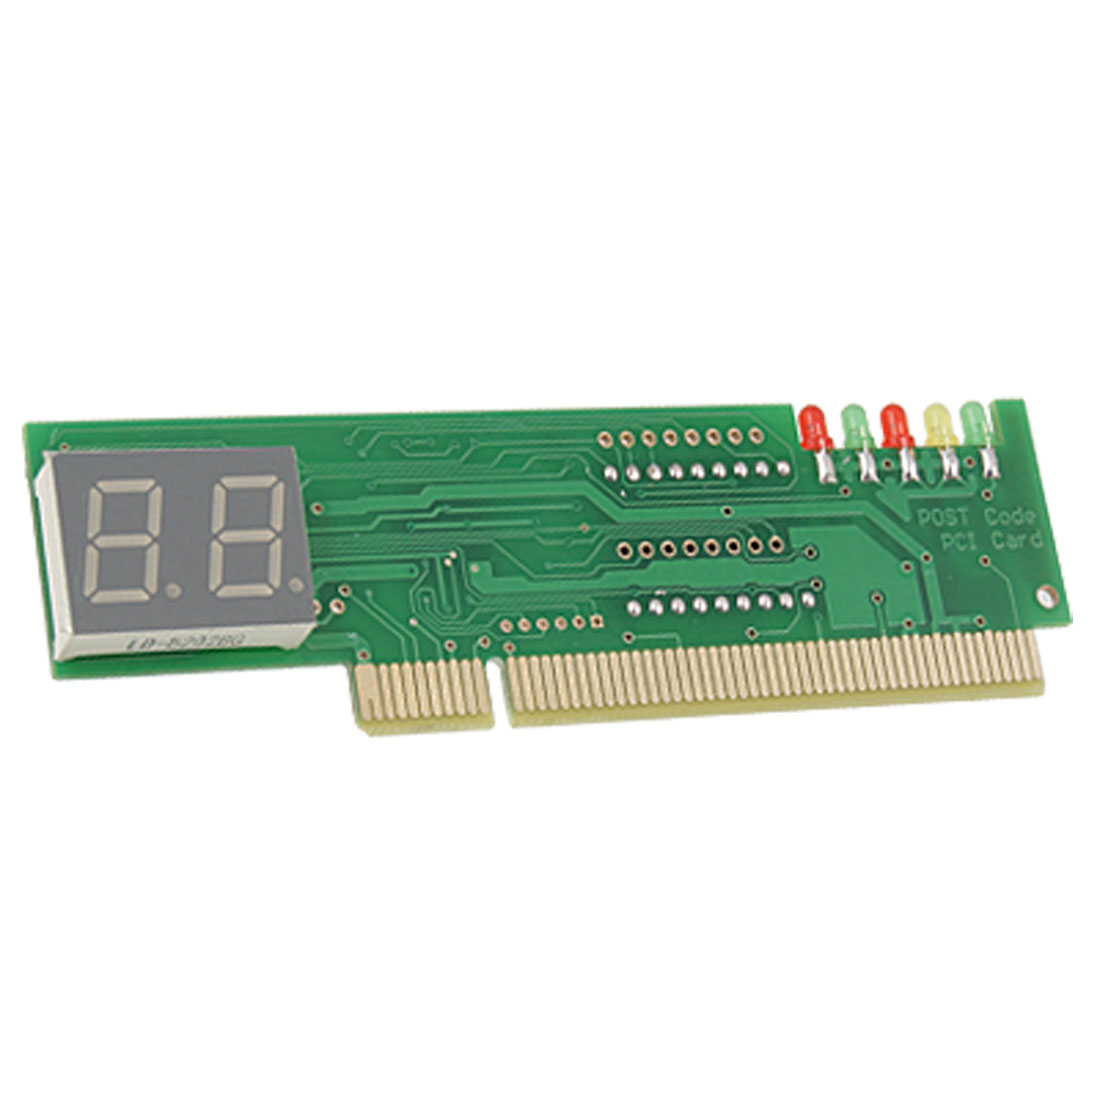 PCI Computer 2 Digits Diagnostic Card Motherboard Analyzer Tester